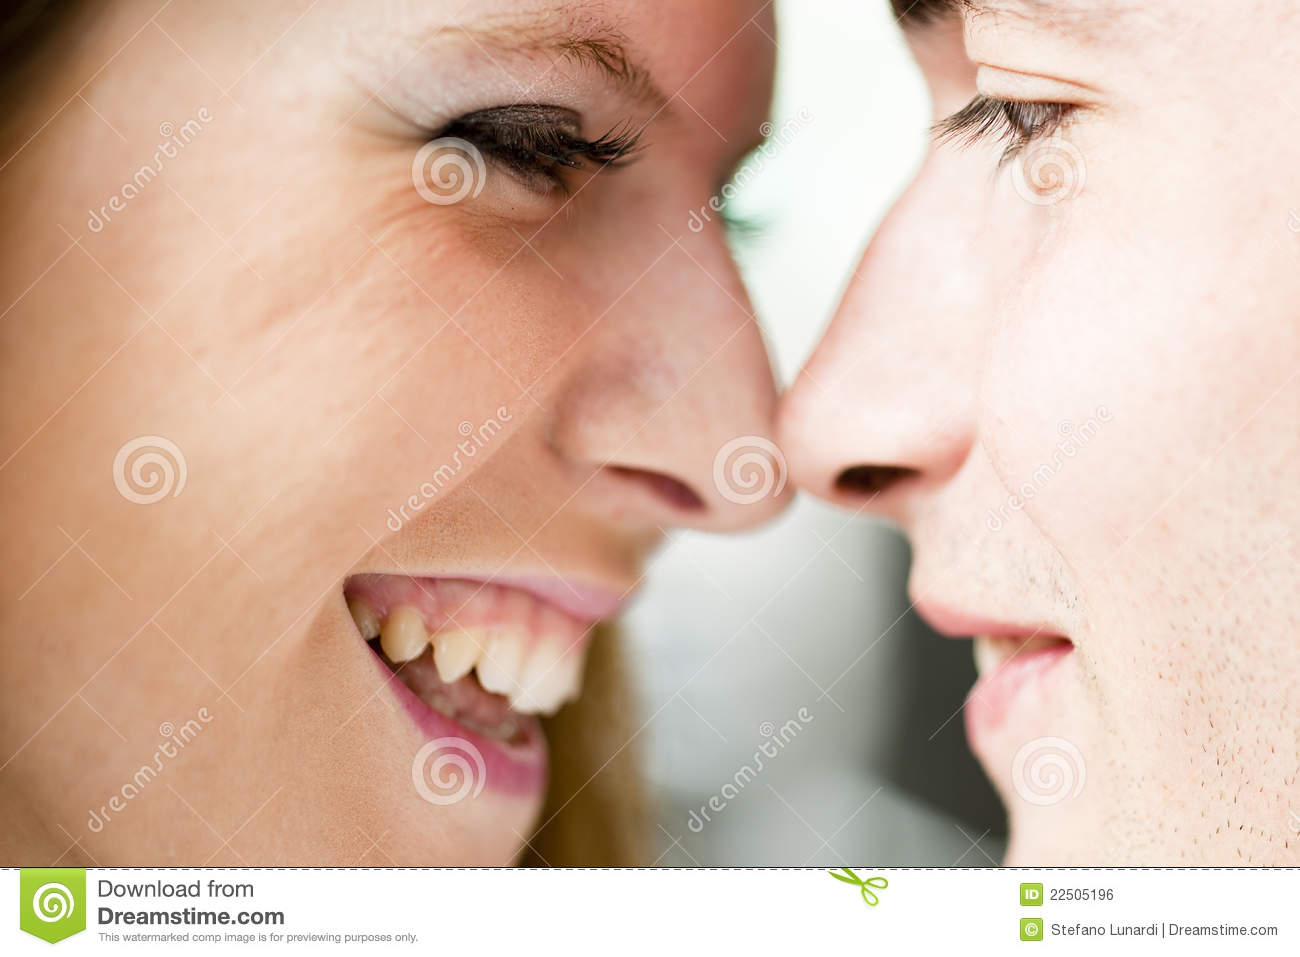 Chichester Map besides Stock Photography Scientist Waving Camera Happily Image33747812 further Great Court besides Royalty Free Stock Photo Cartoon Couple Kissing Image29447155 besides 397988. on dating plan map